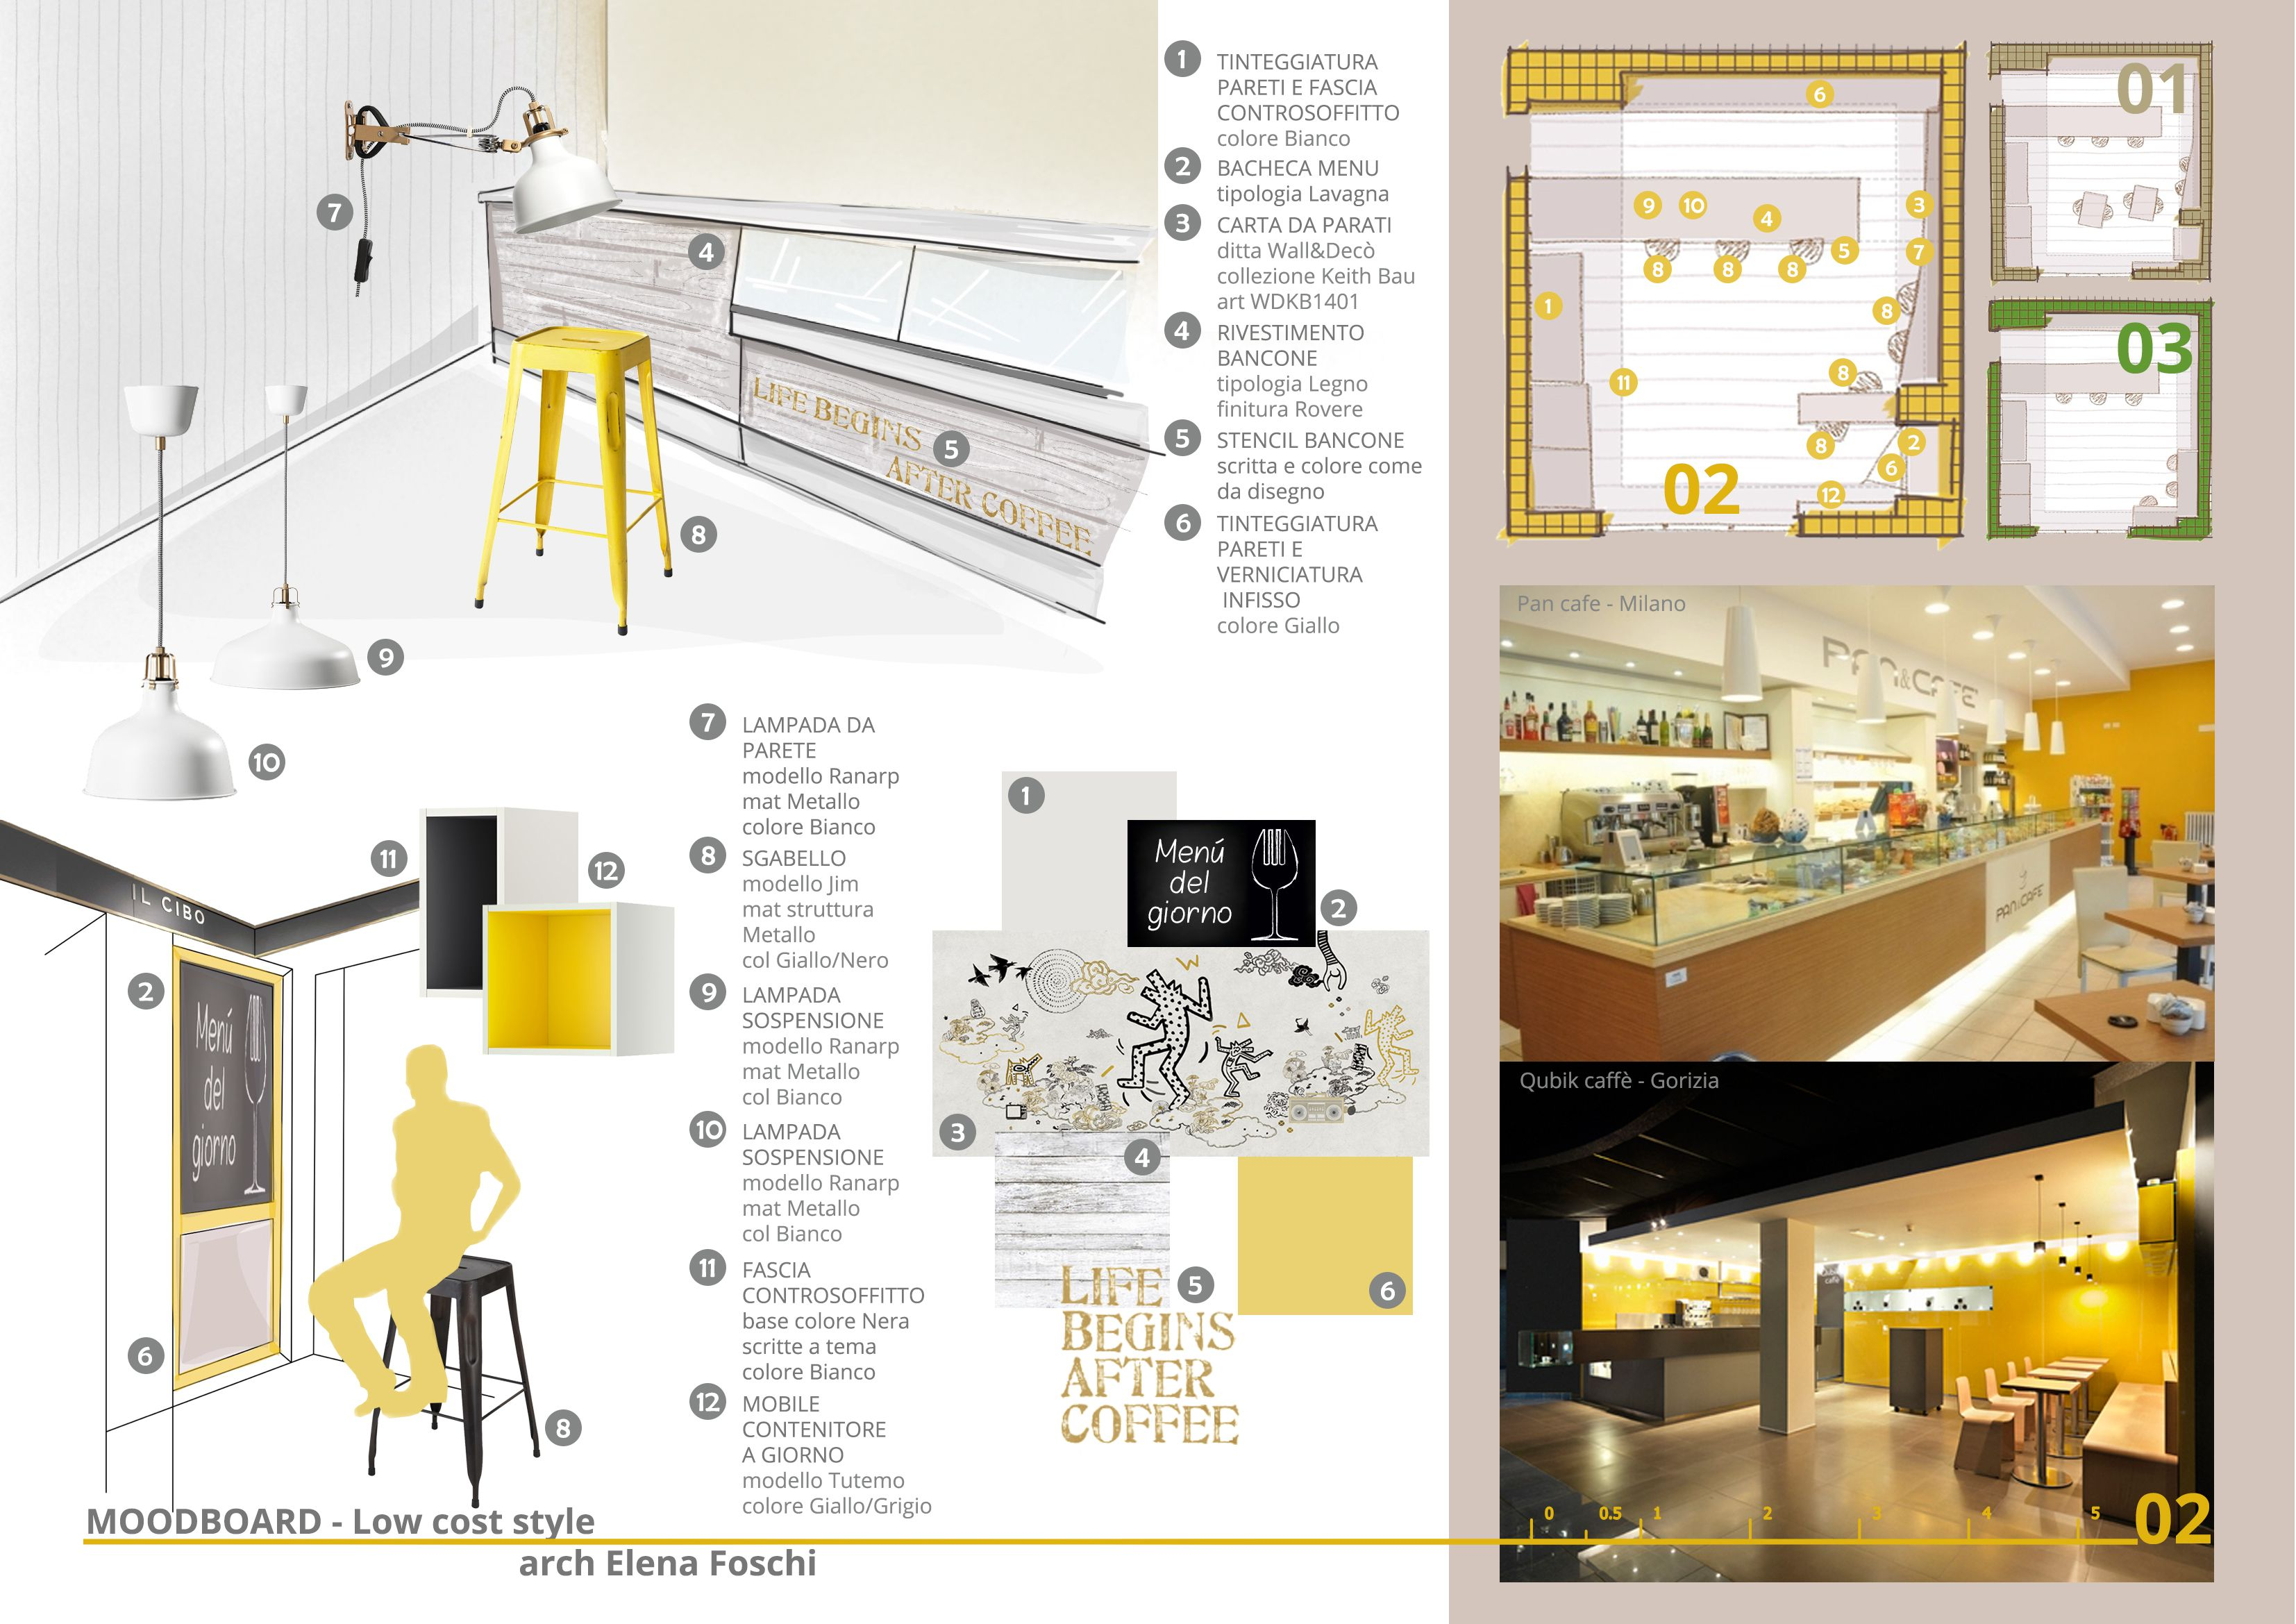 Moodboard restayling bar moodboard efarchitettura for Siti di interior design